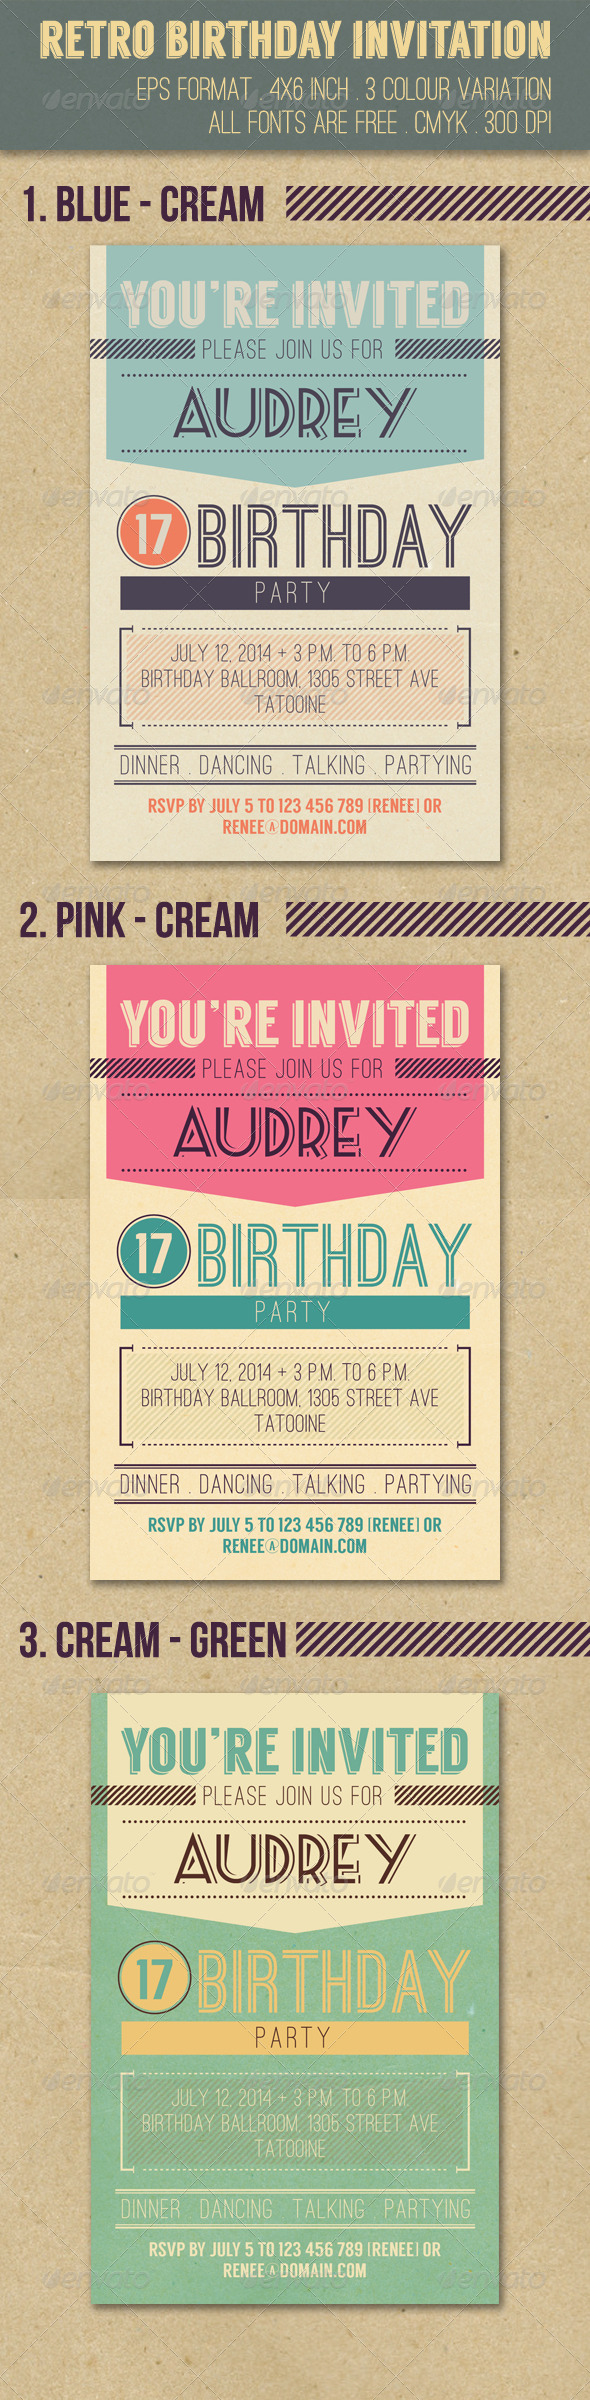 GraphicRiver Retro Birthday Invitation 8226705